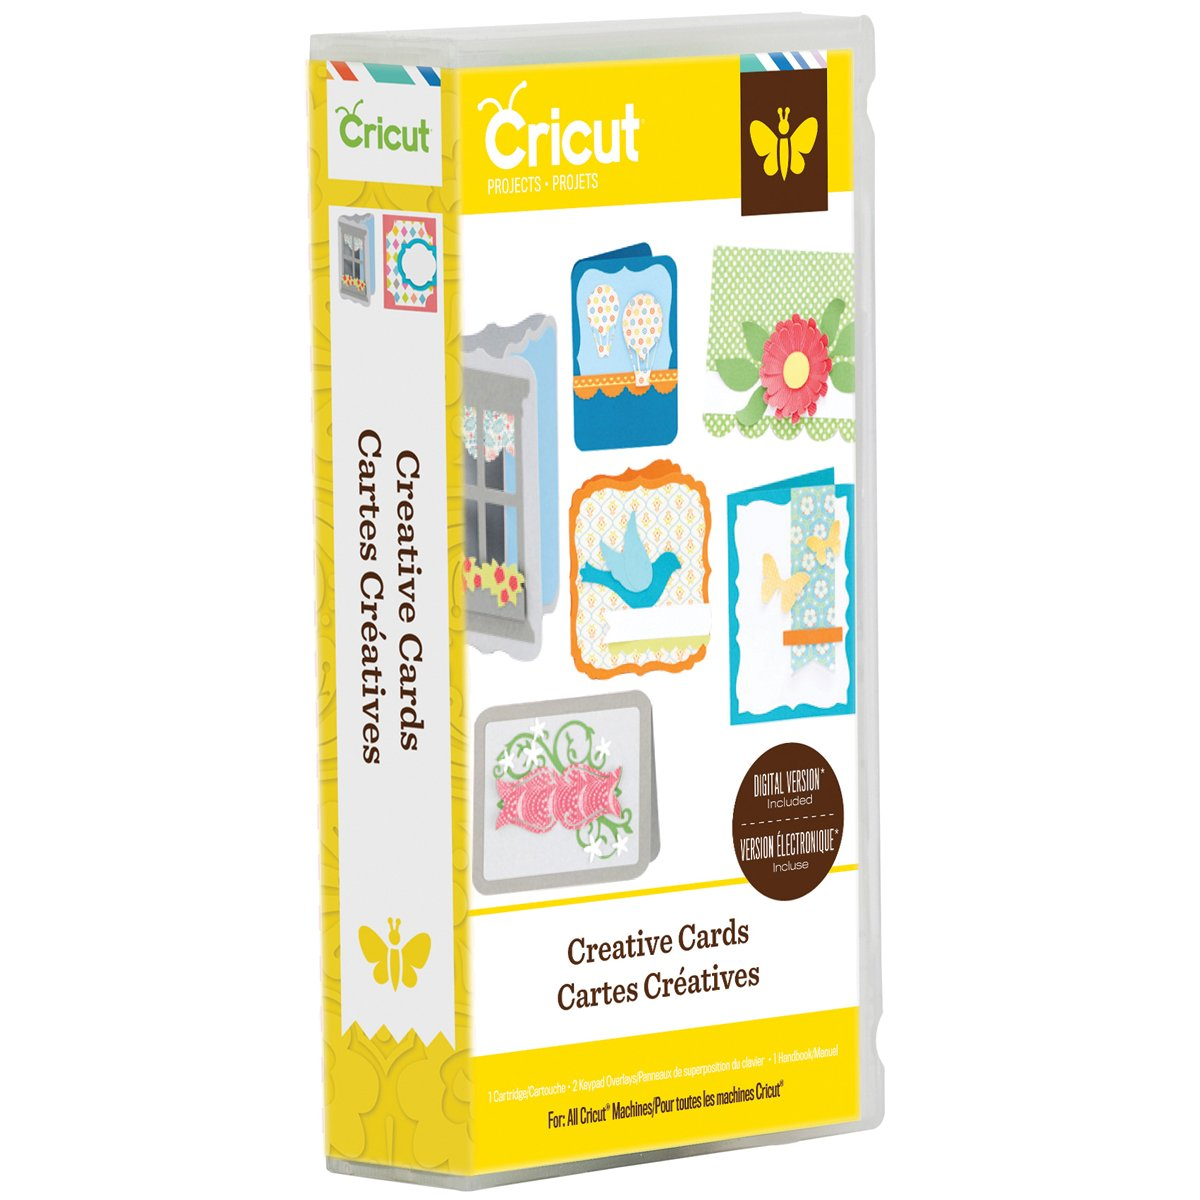 Provo Craft Cricut Project Creative Cards Cartridge, Acrylic Multicolour, 12.44x22.86x3.81 cm 2001984